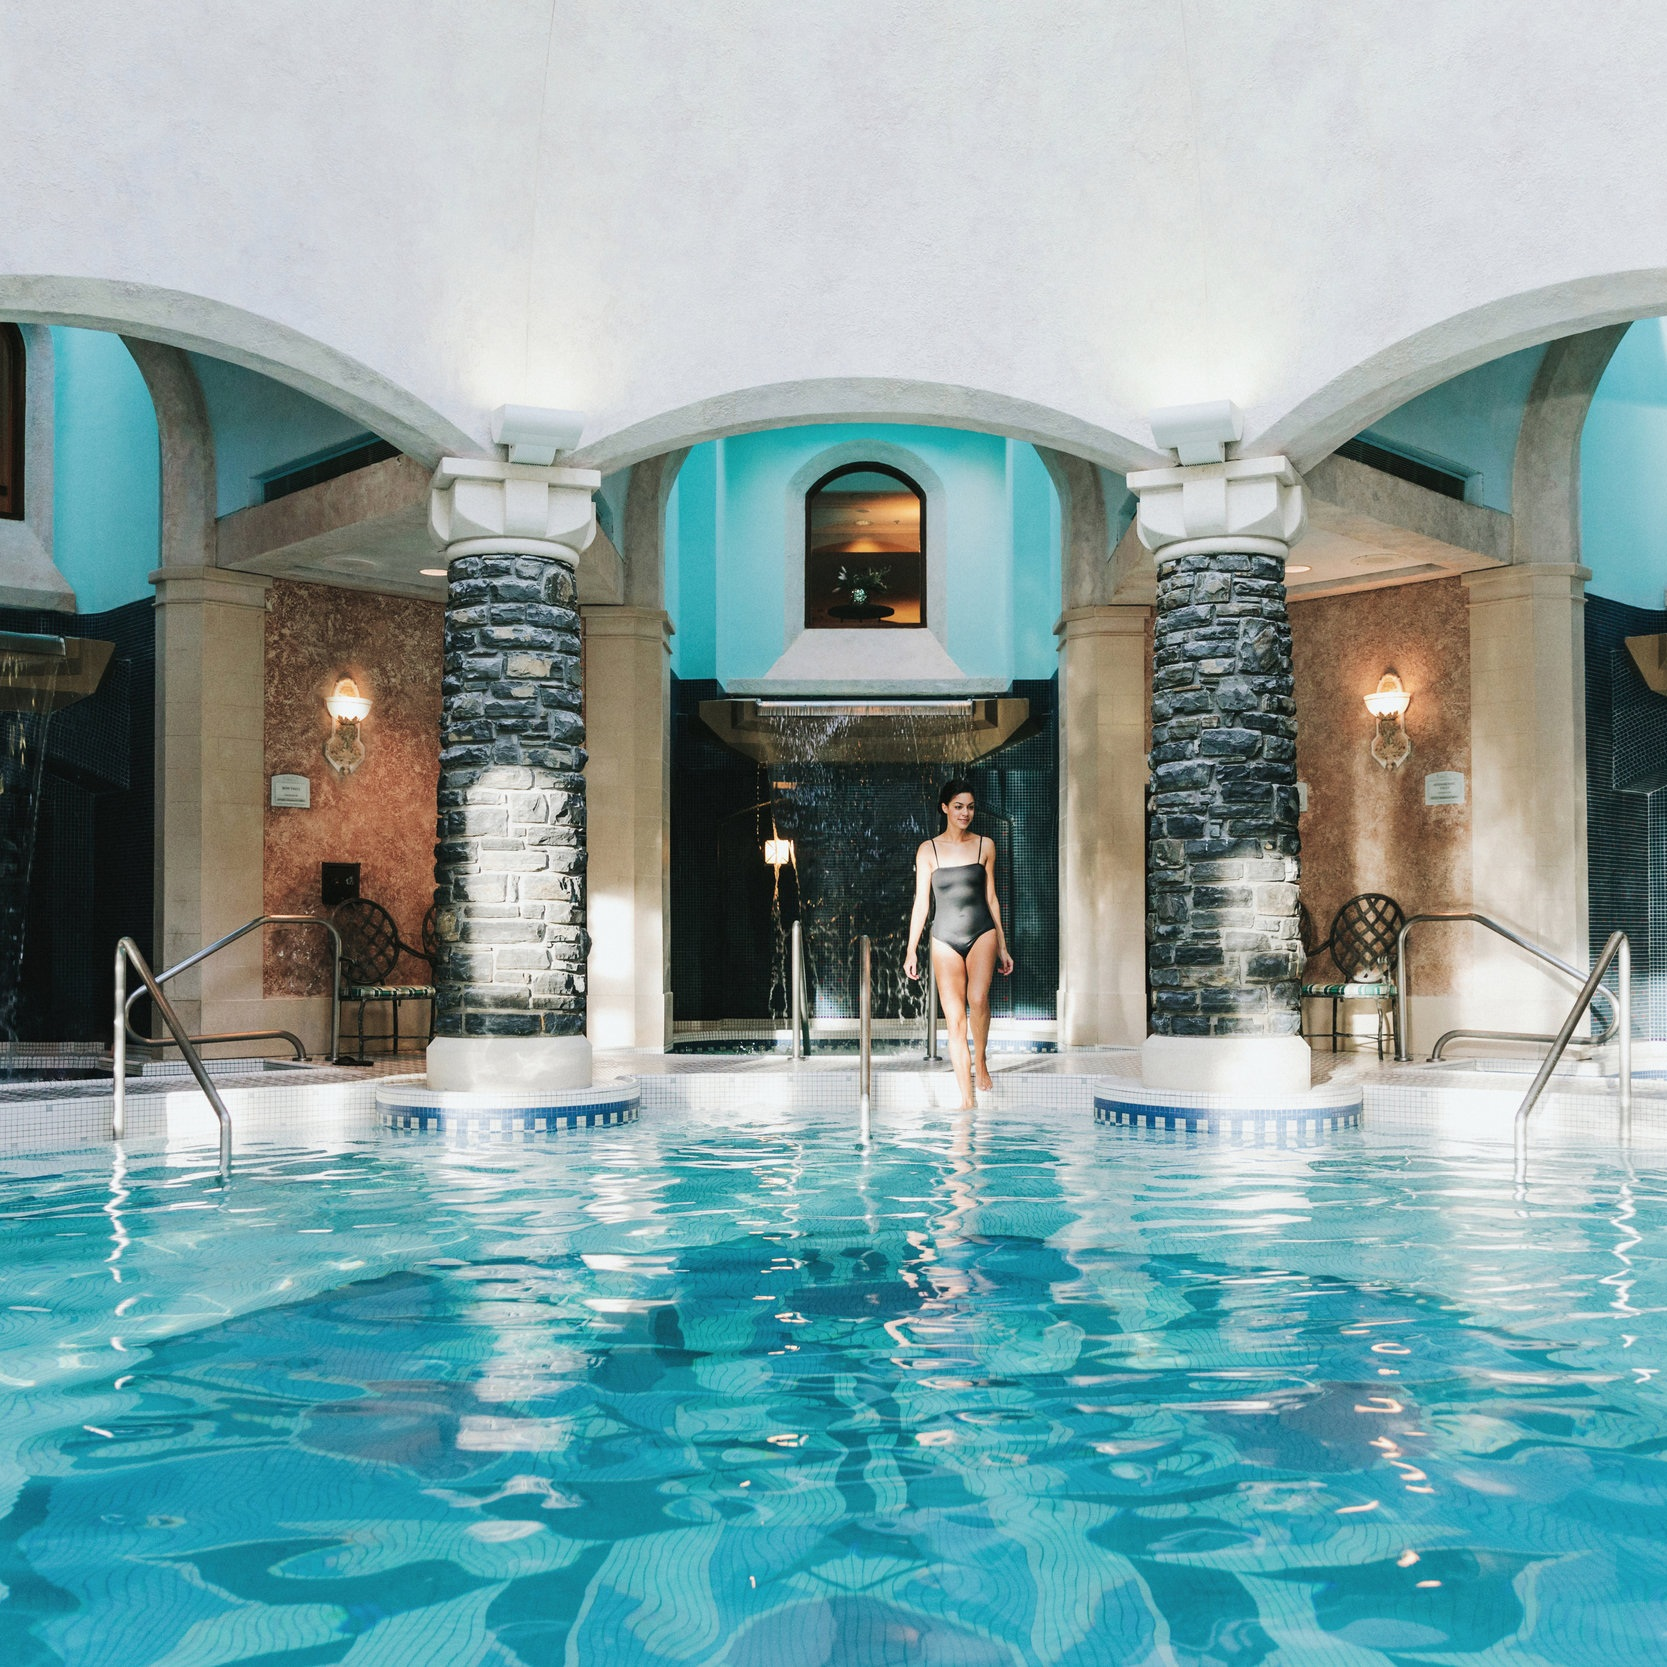 Fairmont+Banff+Springs+-+Willow+Stream+Spa+-+Mineral+Pool.jpg